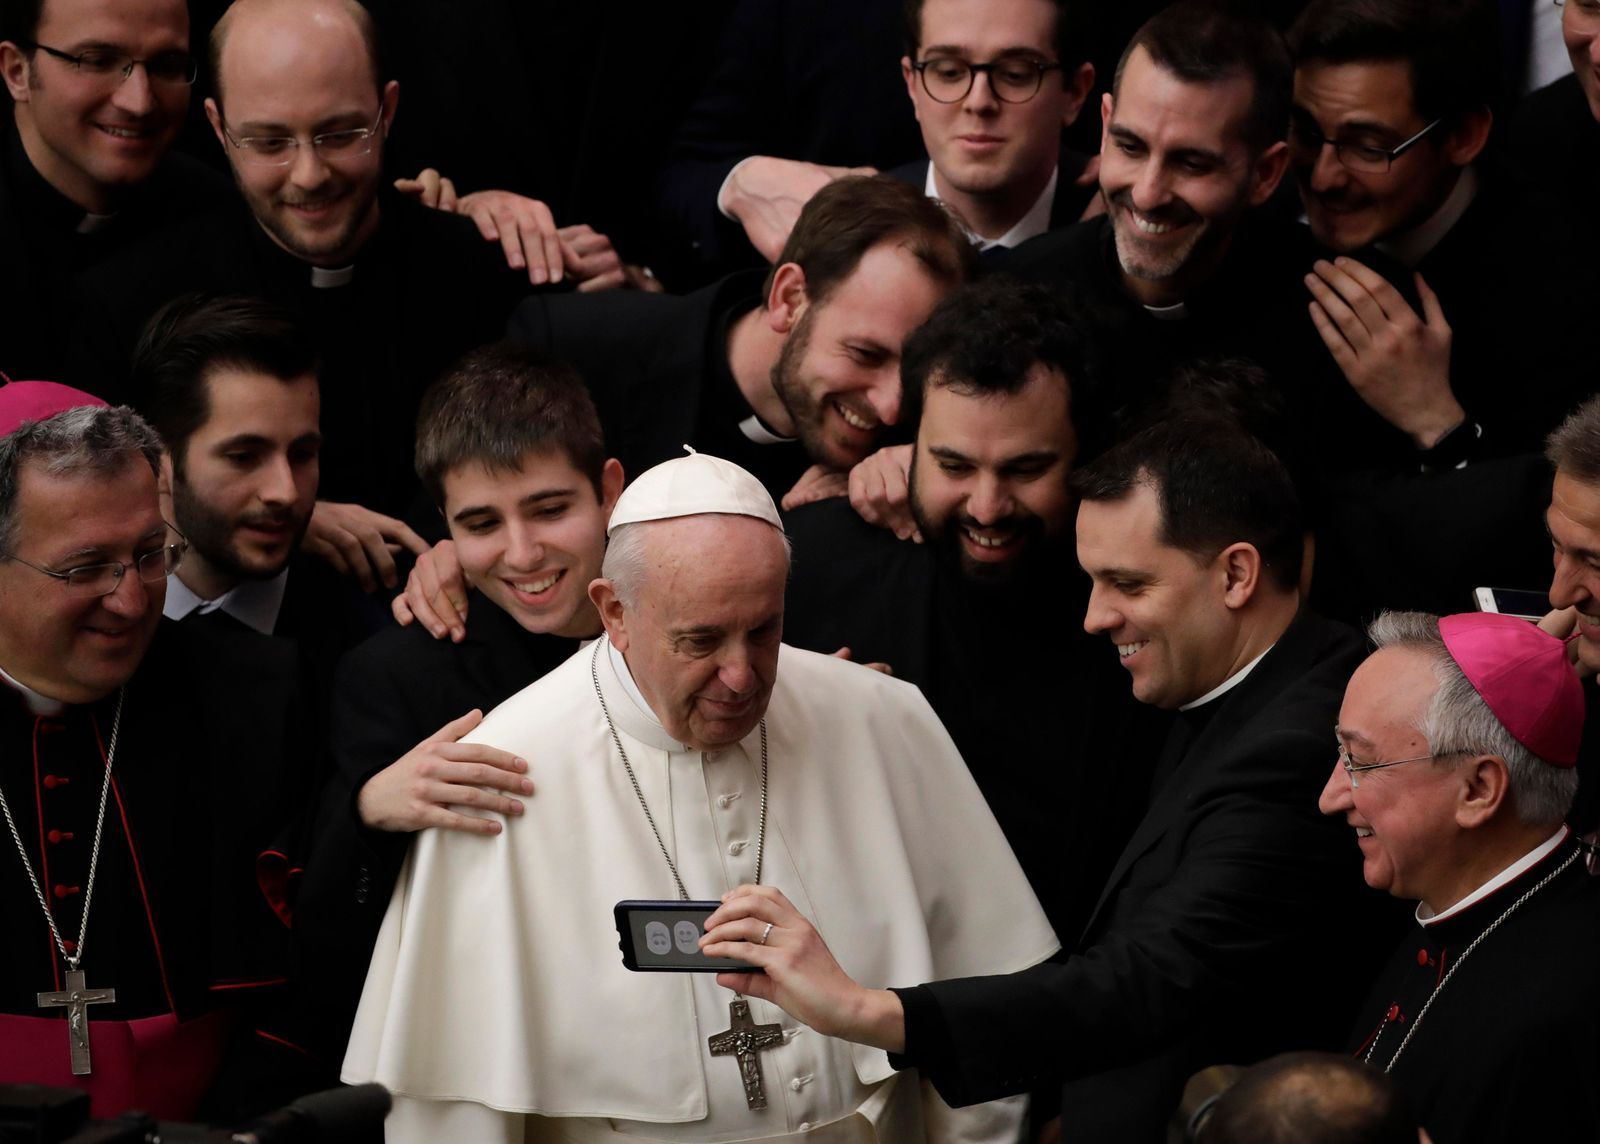 Pope Francis poses for a photo with a group of priests at the end of his weekly general audience in the Paul VI Hall at the Vatican Wednesday, Feb. 20, 2019. (AP Photo/Alessandra Tarantino)